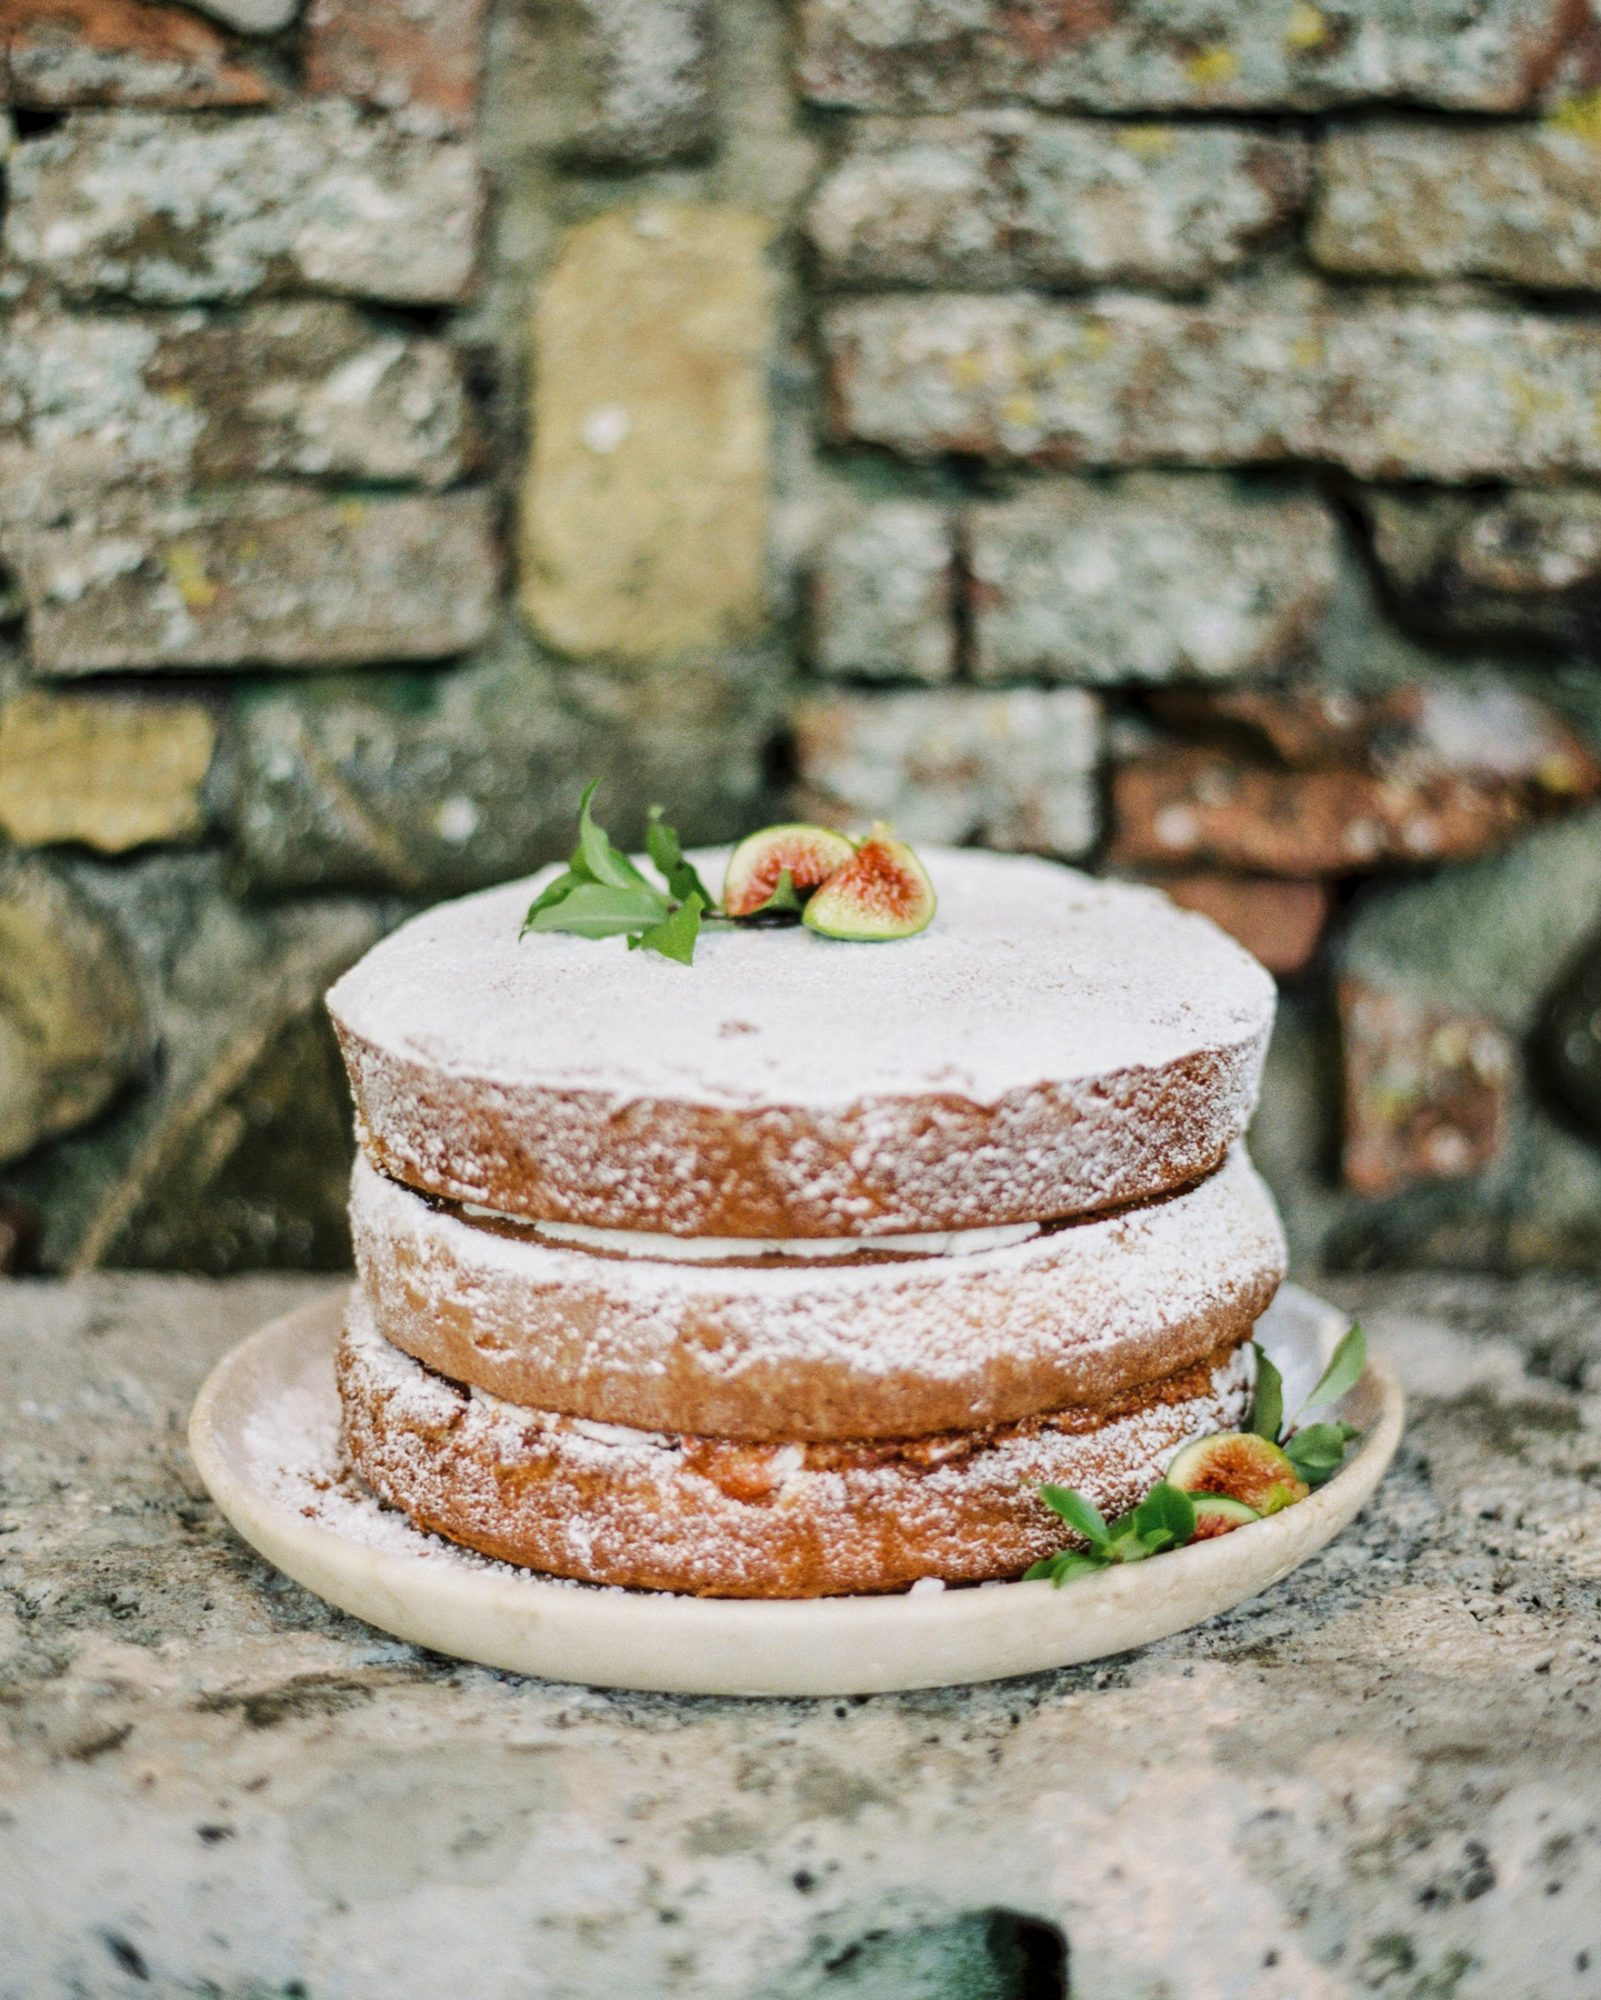 christine-dagan-wedding-naked-cake-4275_02-s113011-0616.jpg